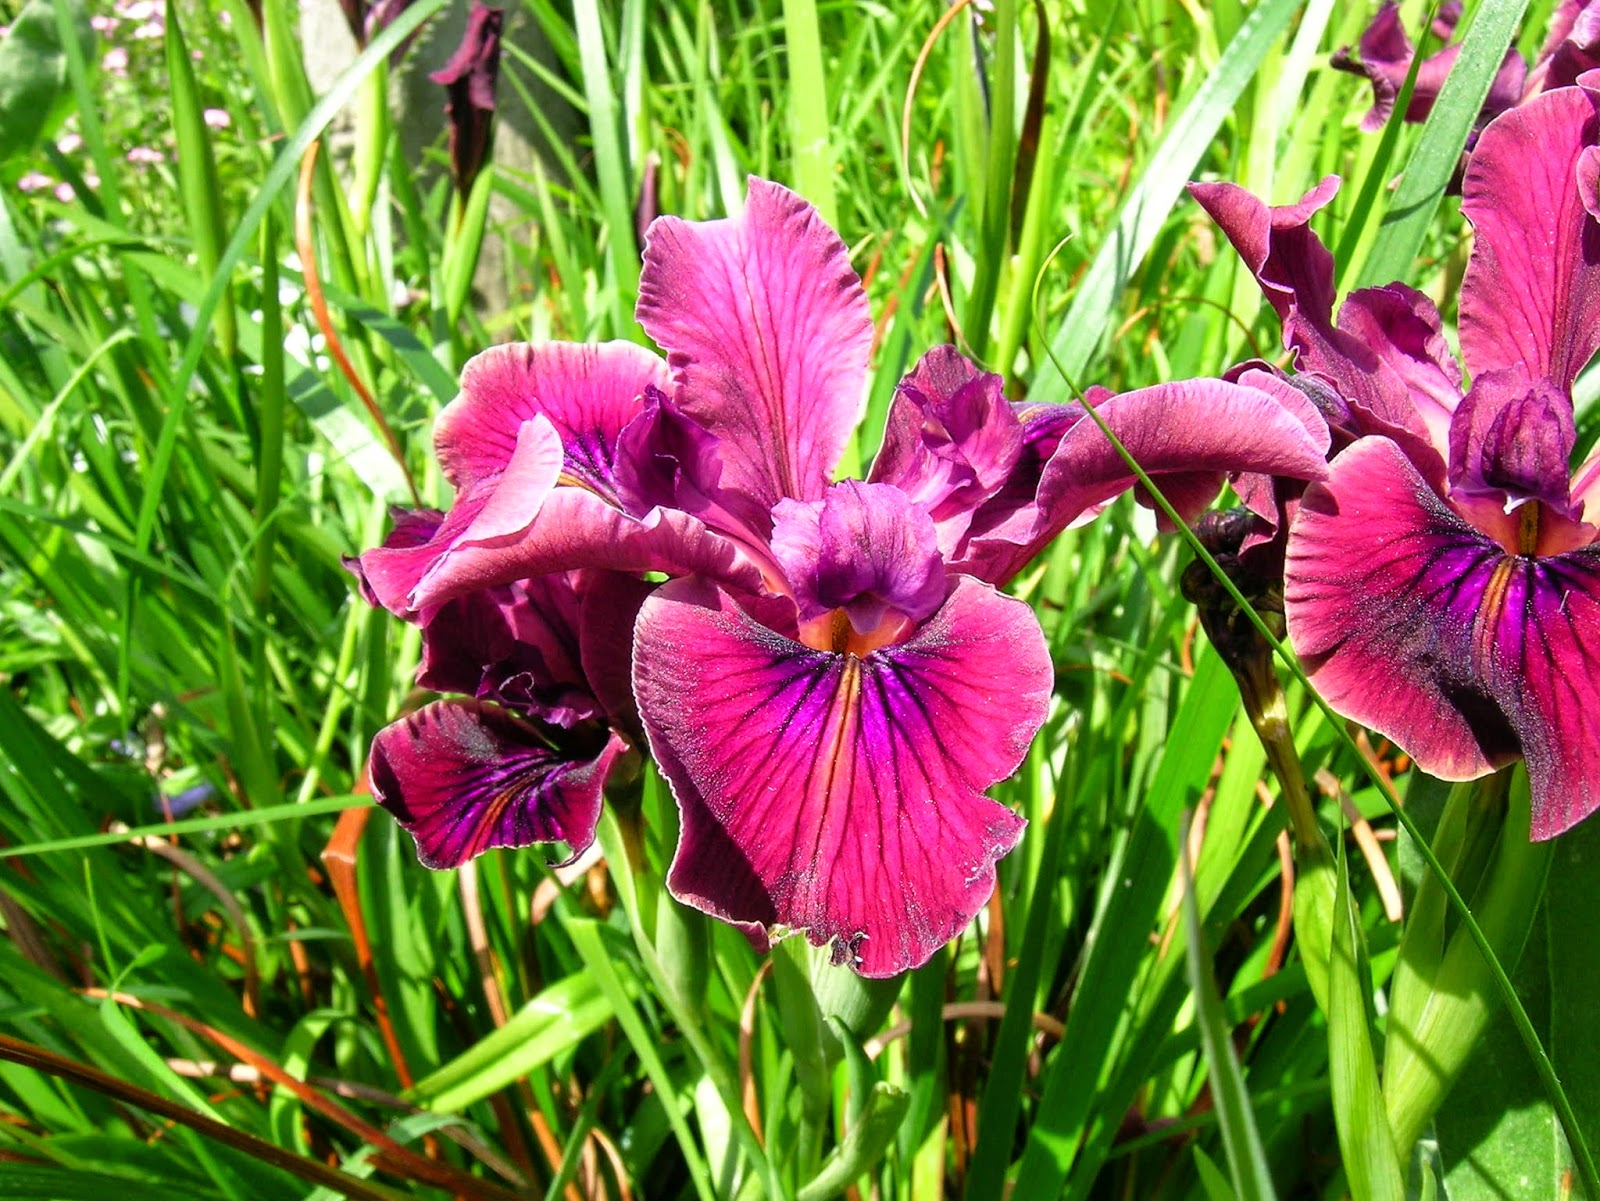 World of irises pci seed germination tricks the plants are sturdy in the coastal pacific northwest climate and flower color izmirmasajfo Choice Image